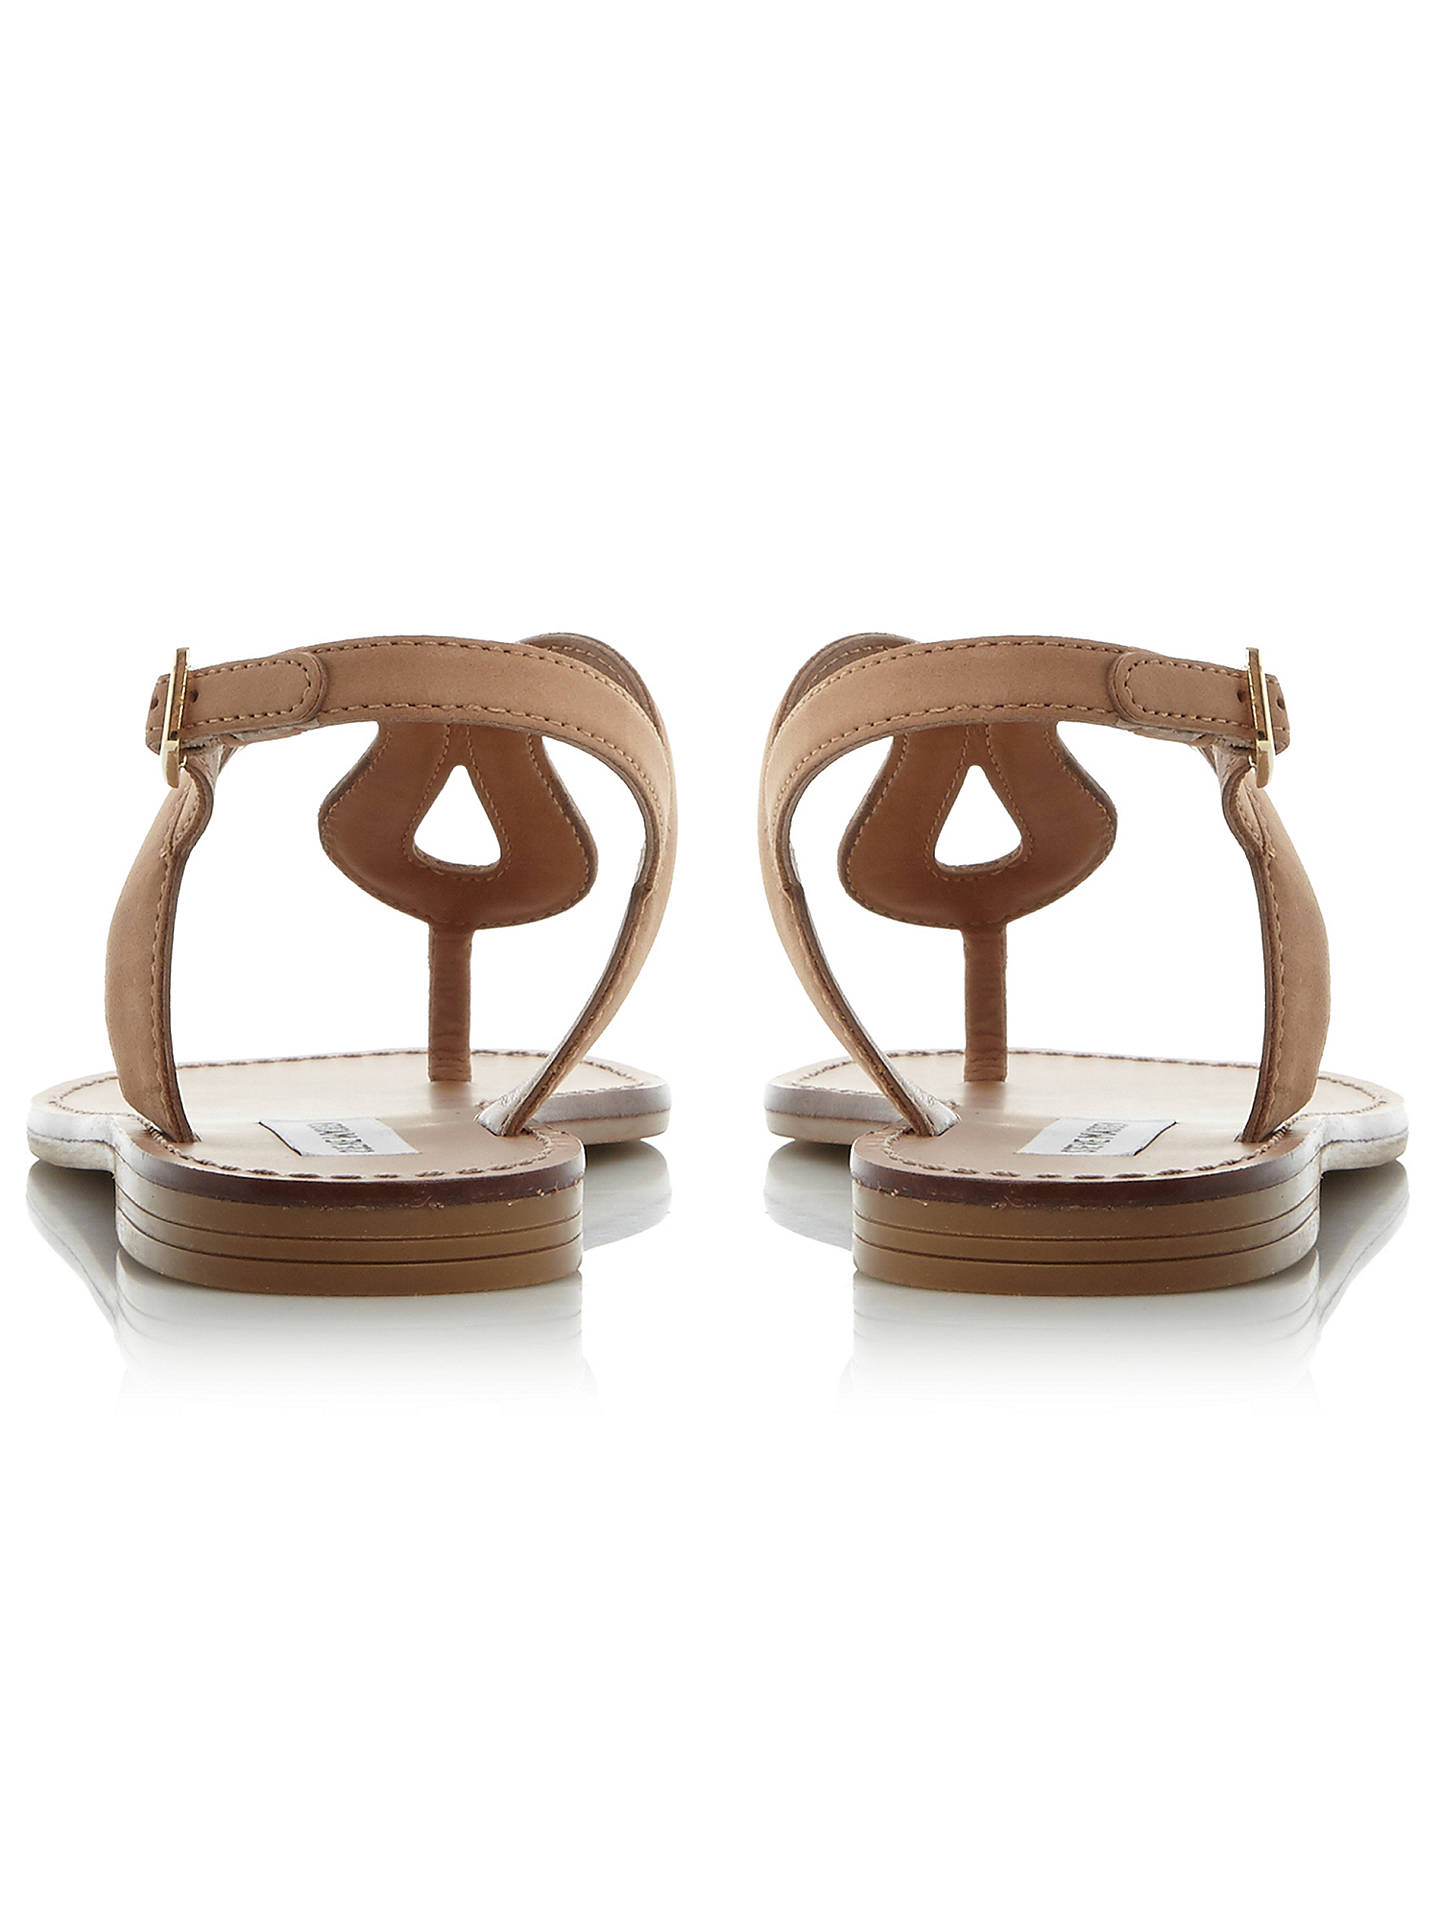 BuySteve Madden Takeaway Toe Post Flat Sandals, Tan, 3 Online at johnlewis.com